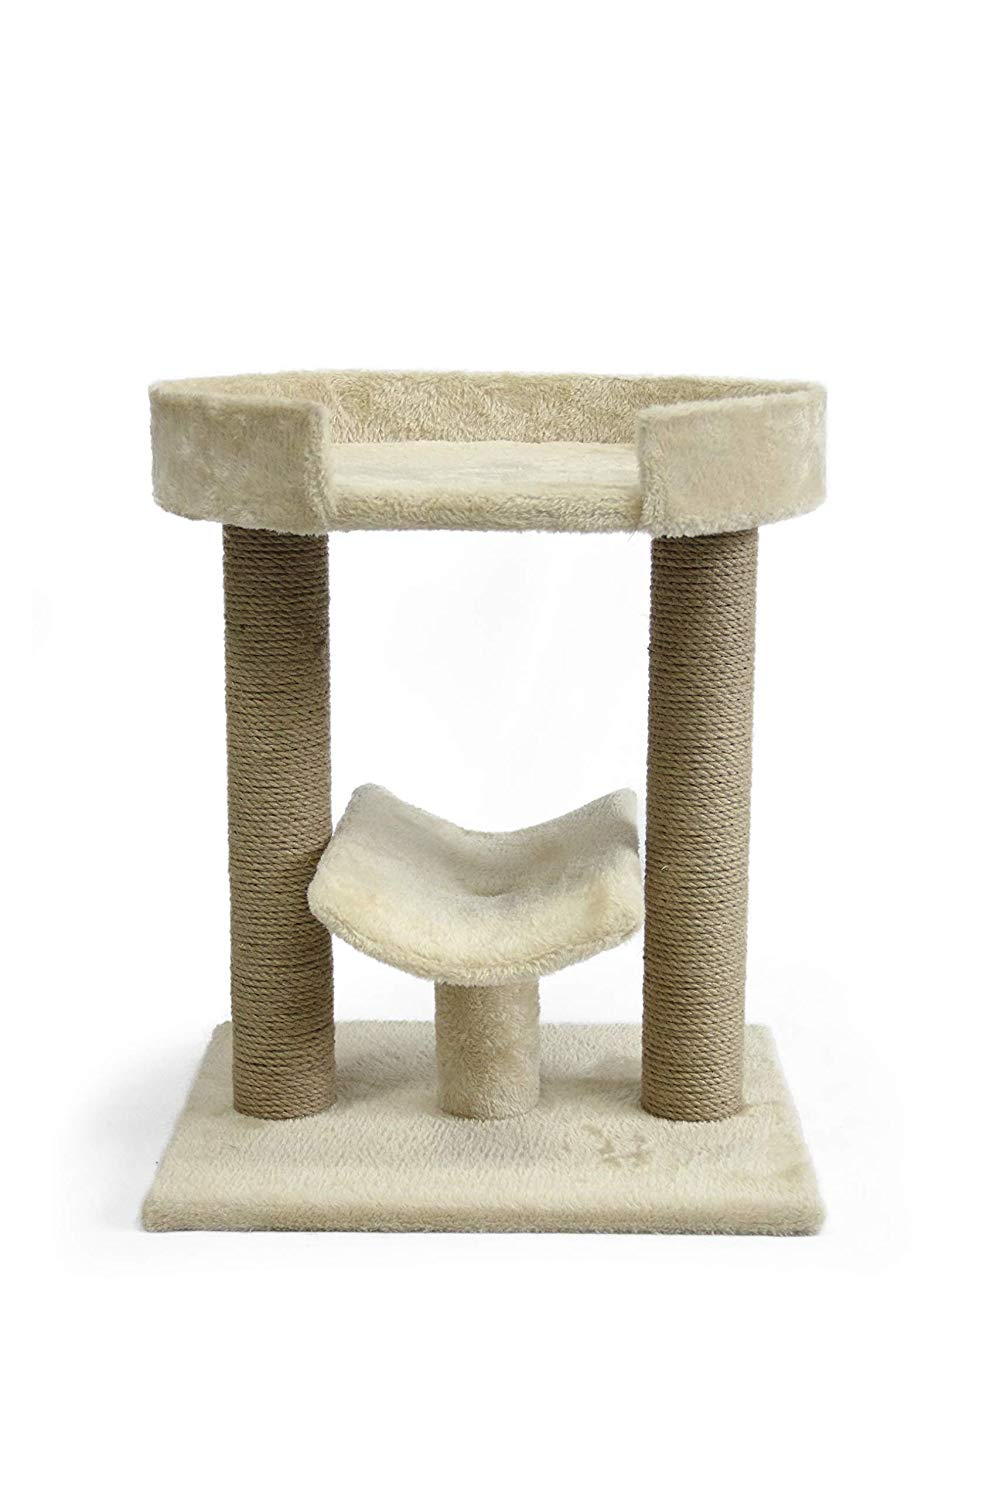 AmazonBasics Cat Tree with Platform